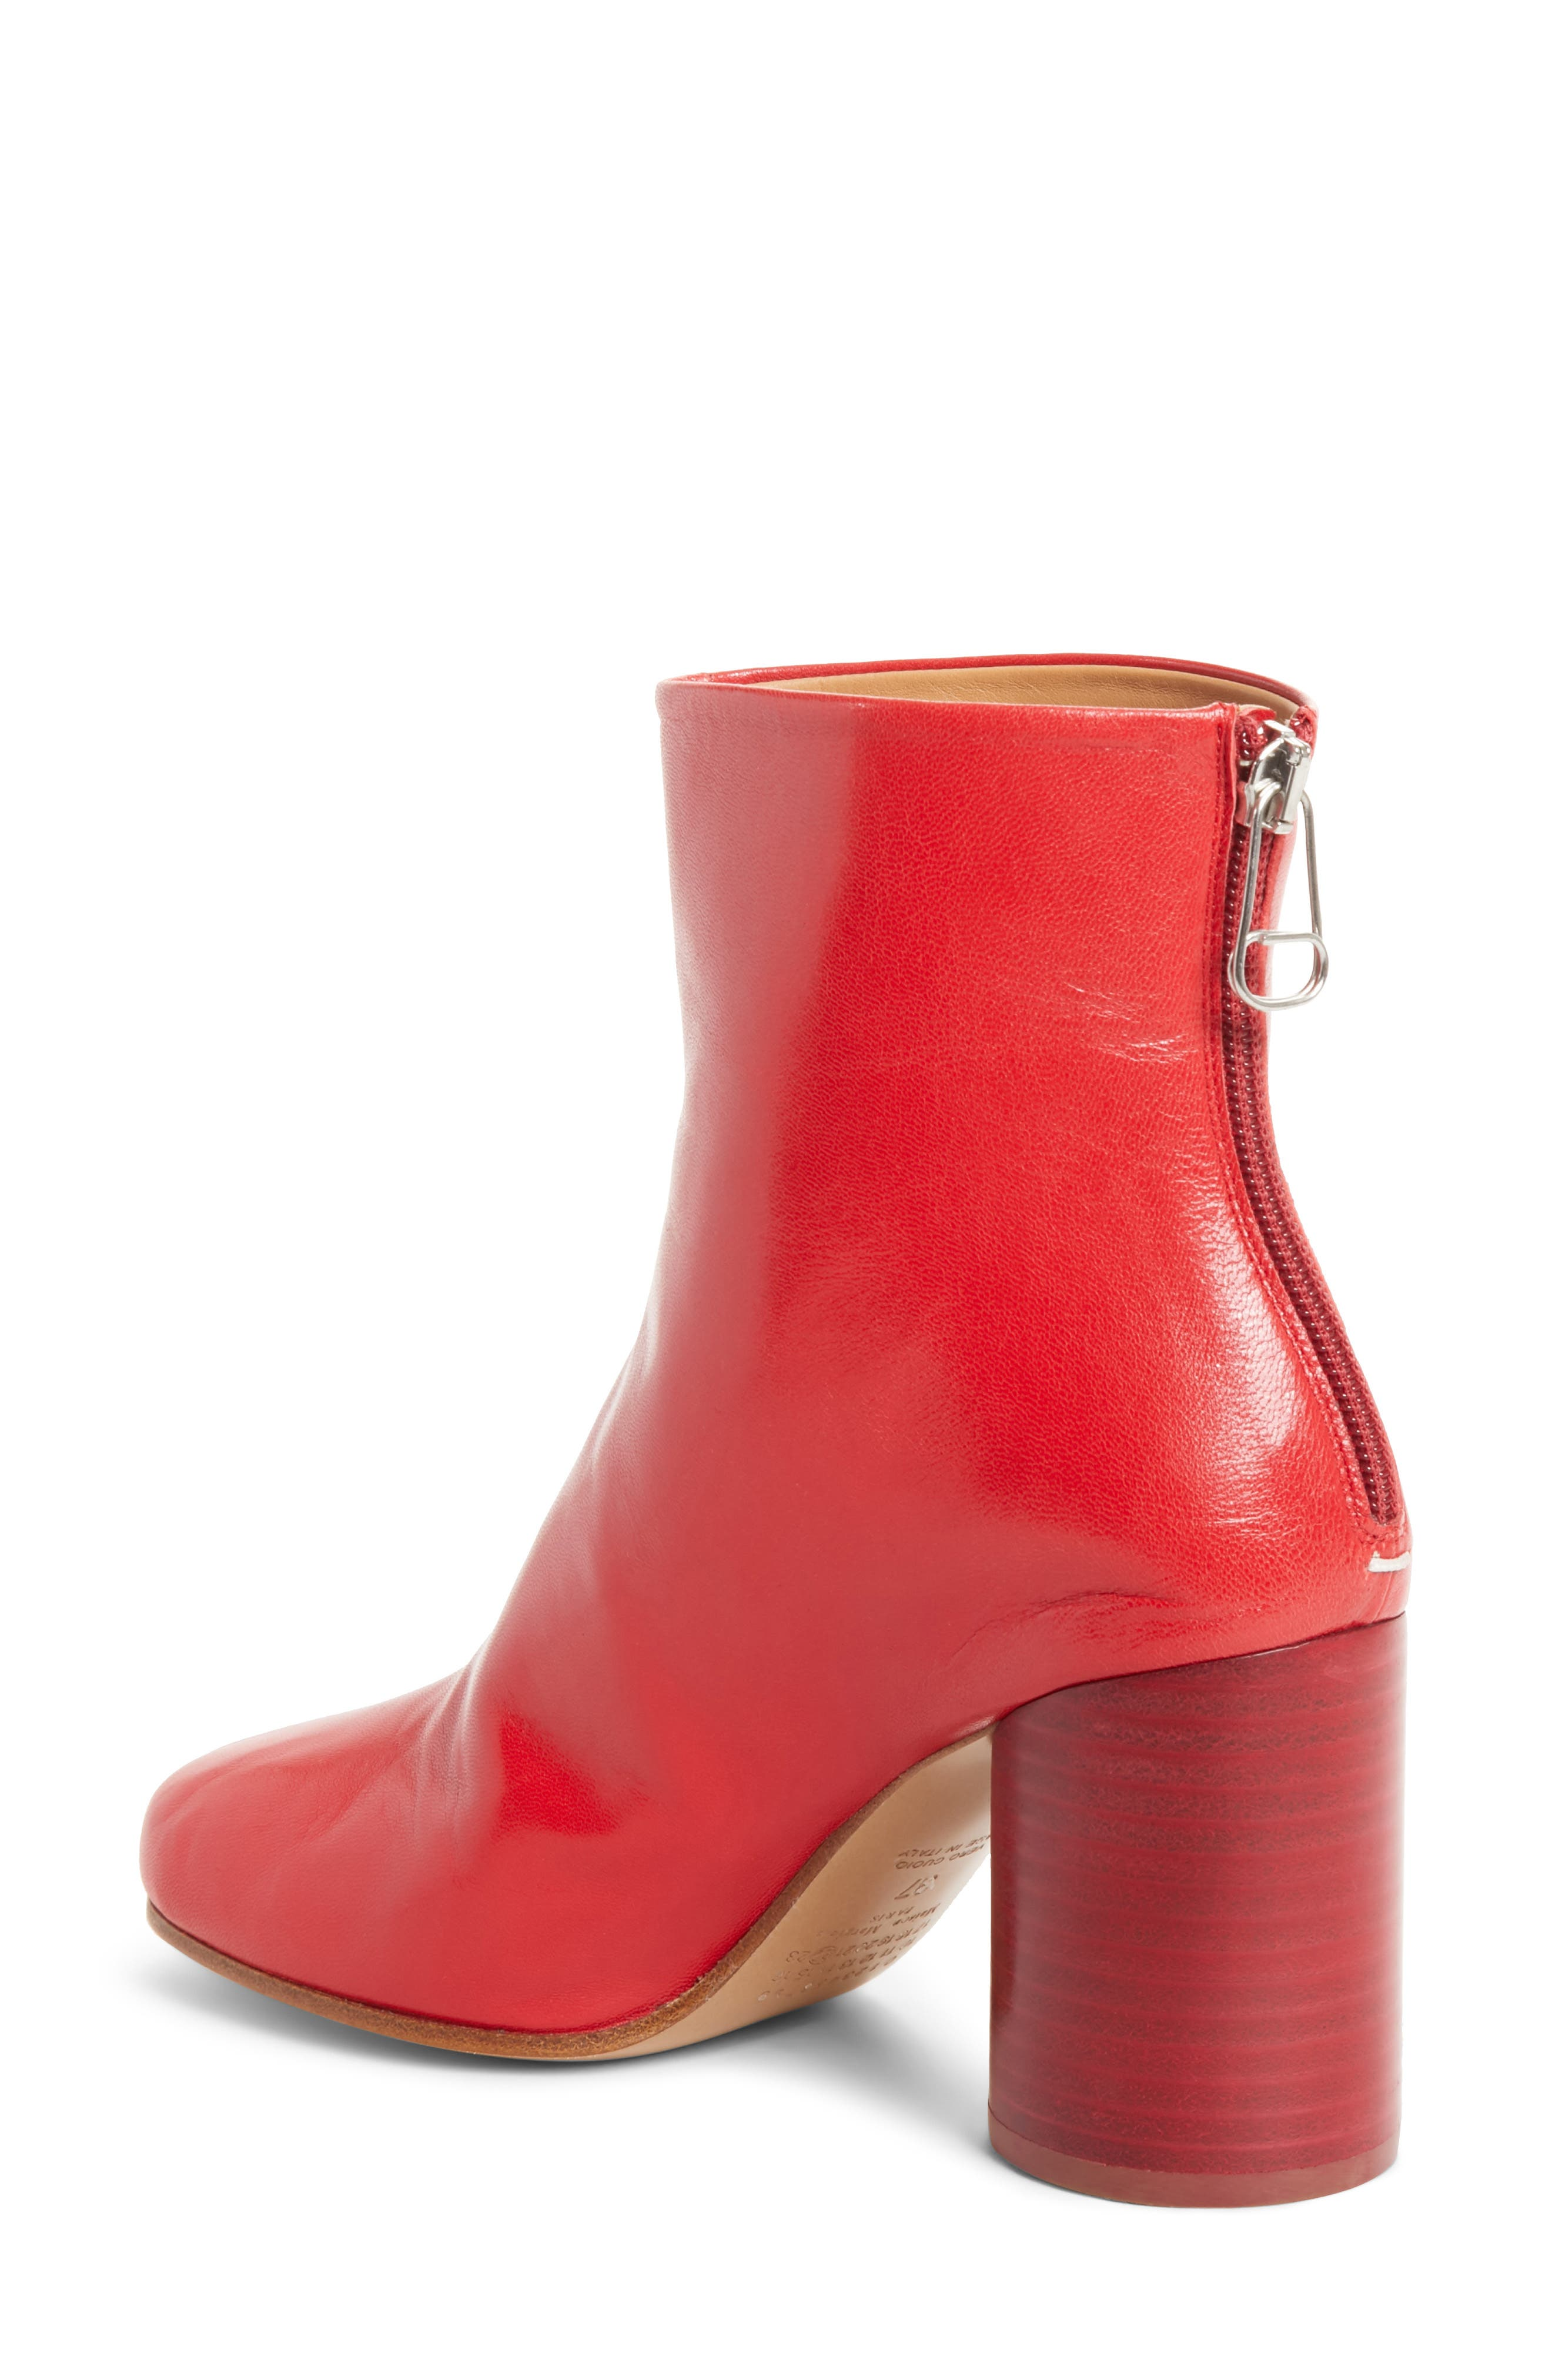 Round Heel Ankle Boot,                             Alternate thumbnail 2, color,                             Red